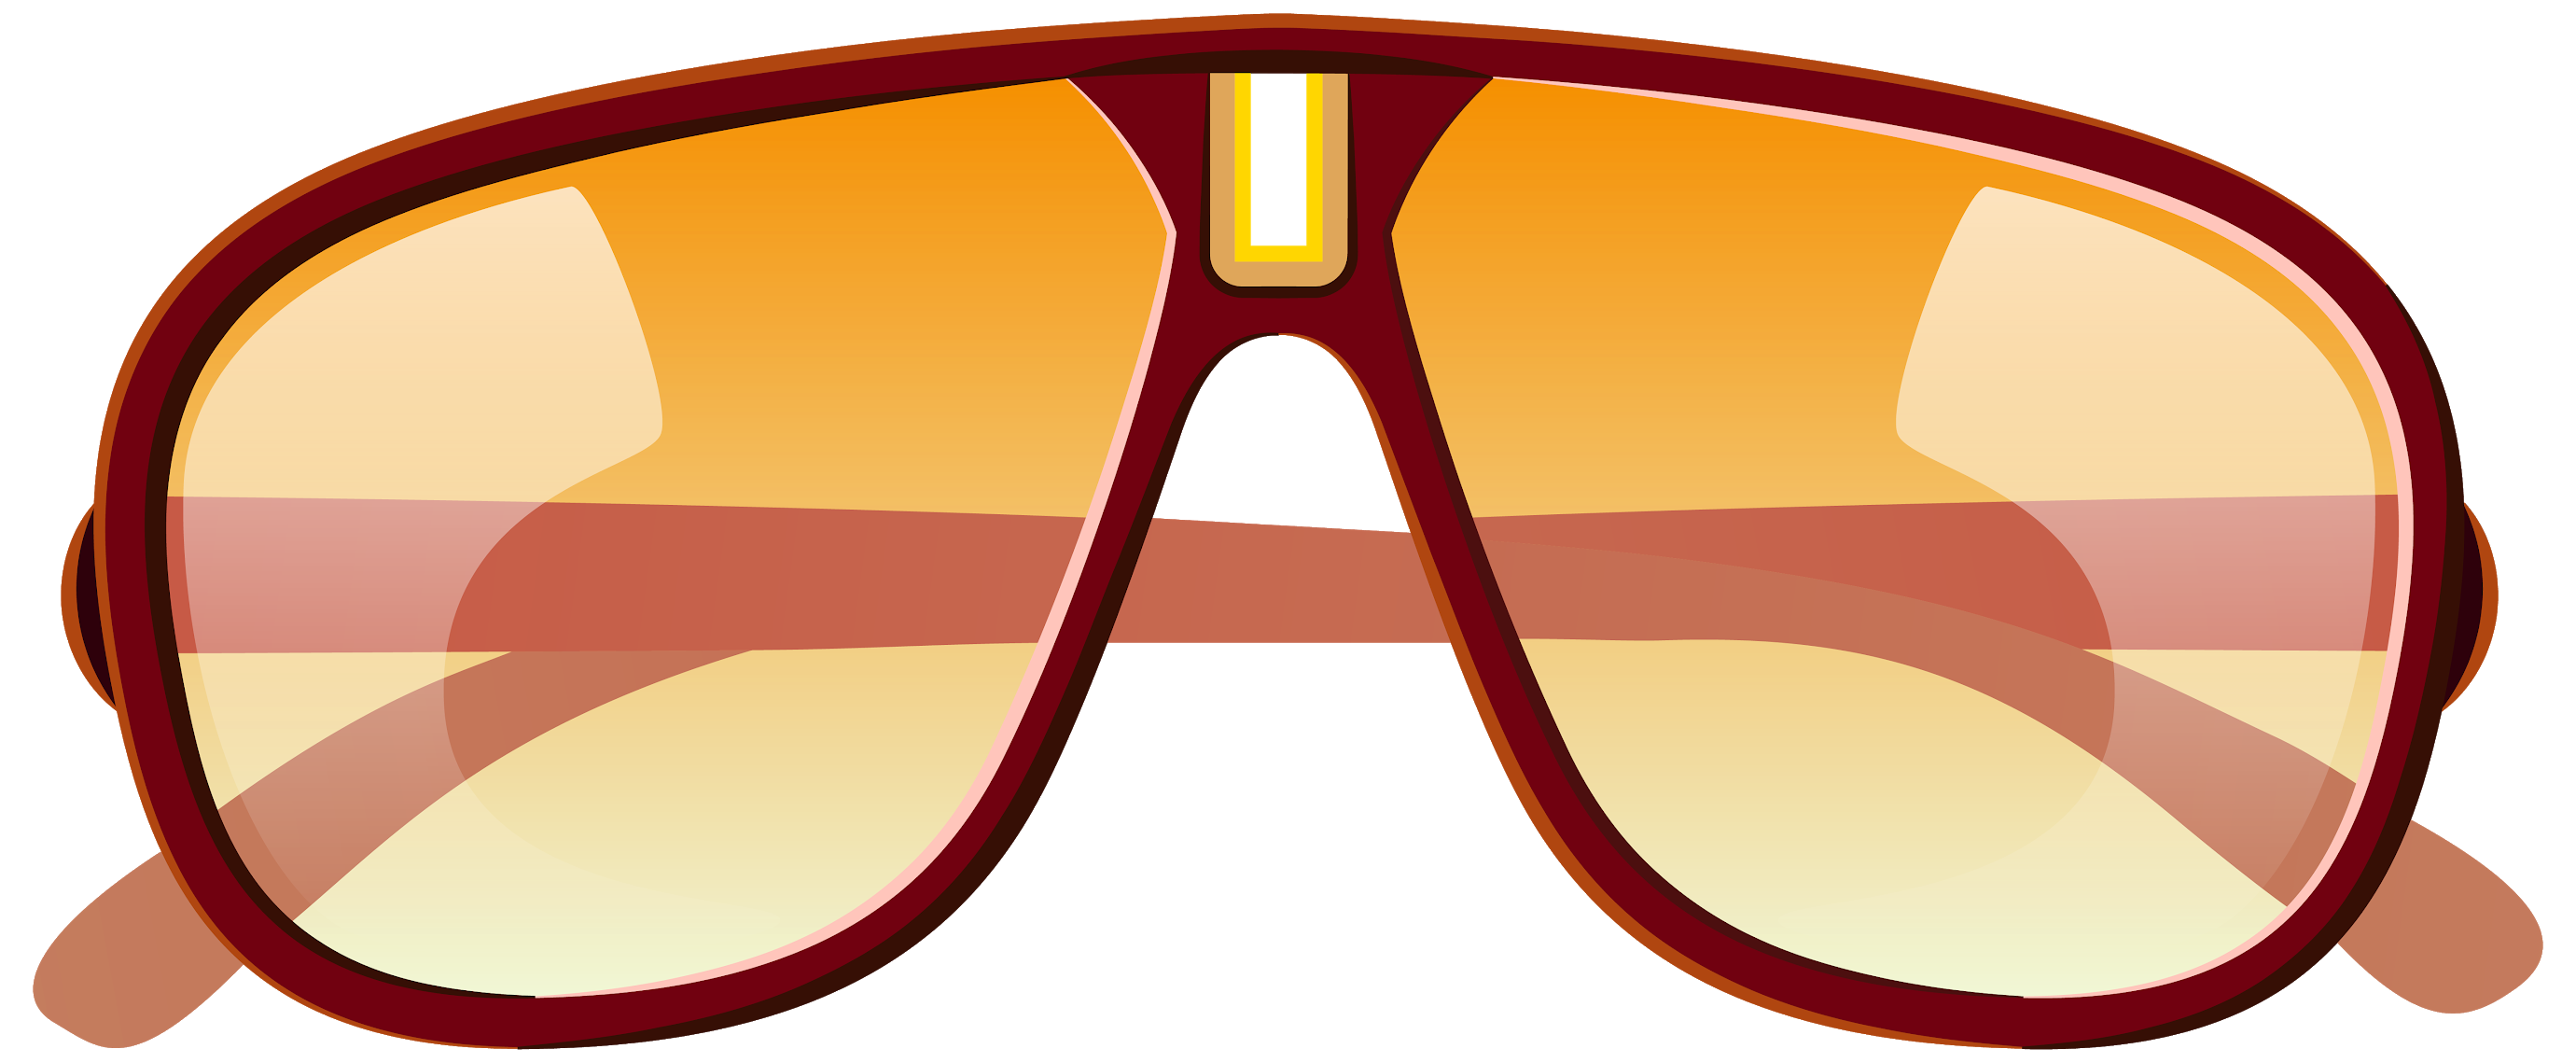 Sunglasses Png Clipart Picture Glasses Png Image Sunglasses Clip Art Large Sunglasses